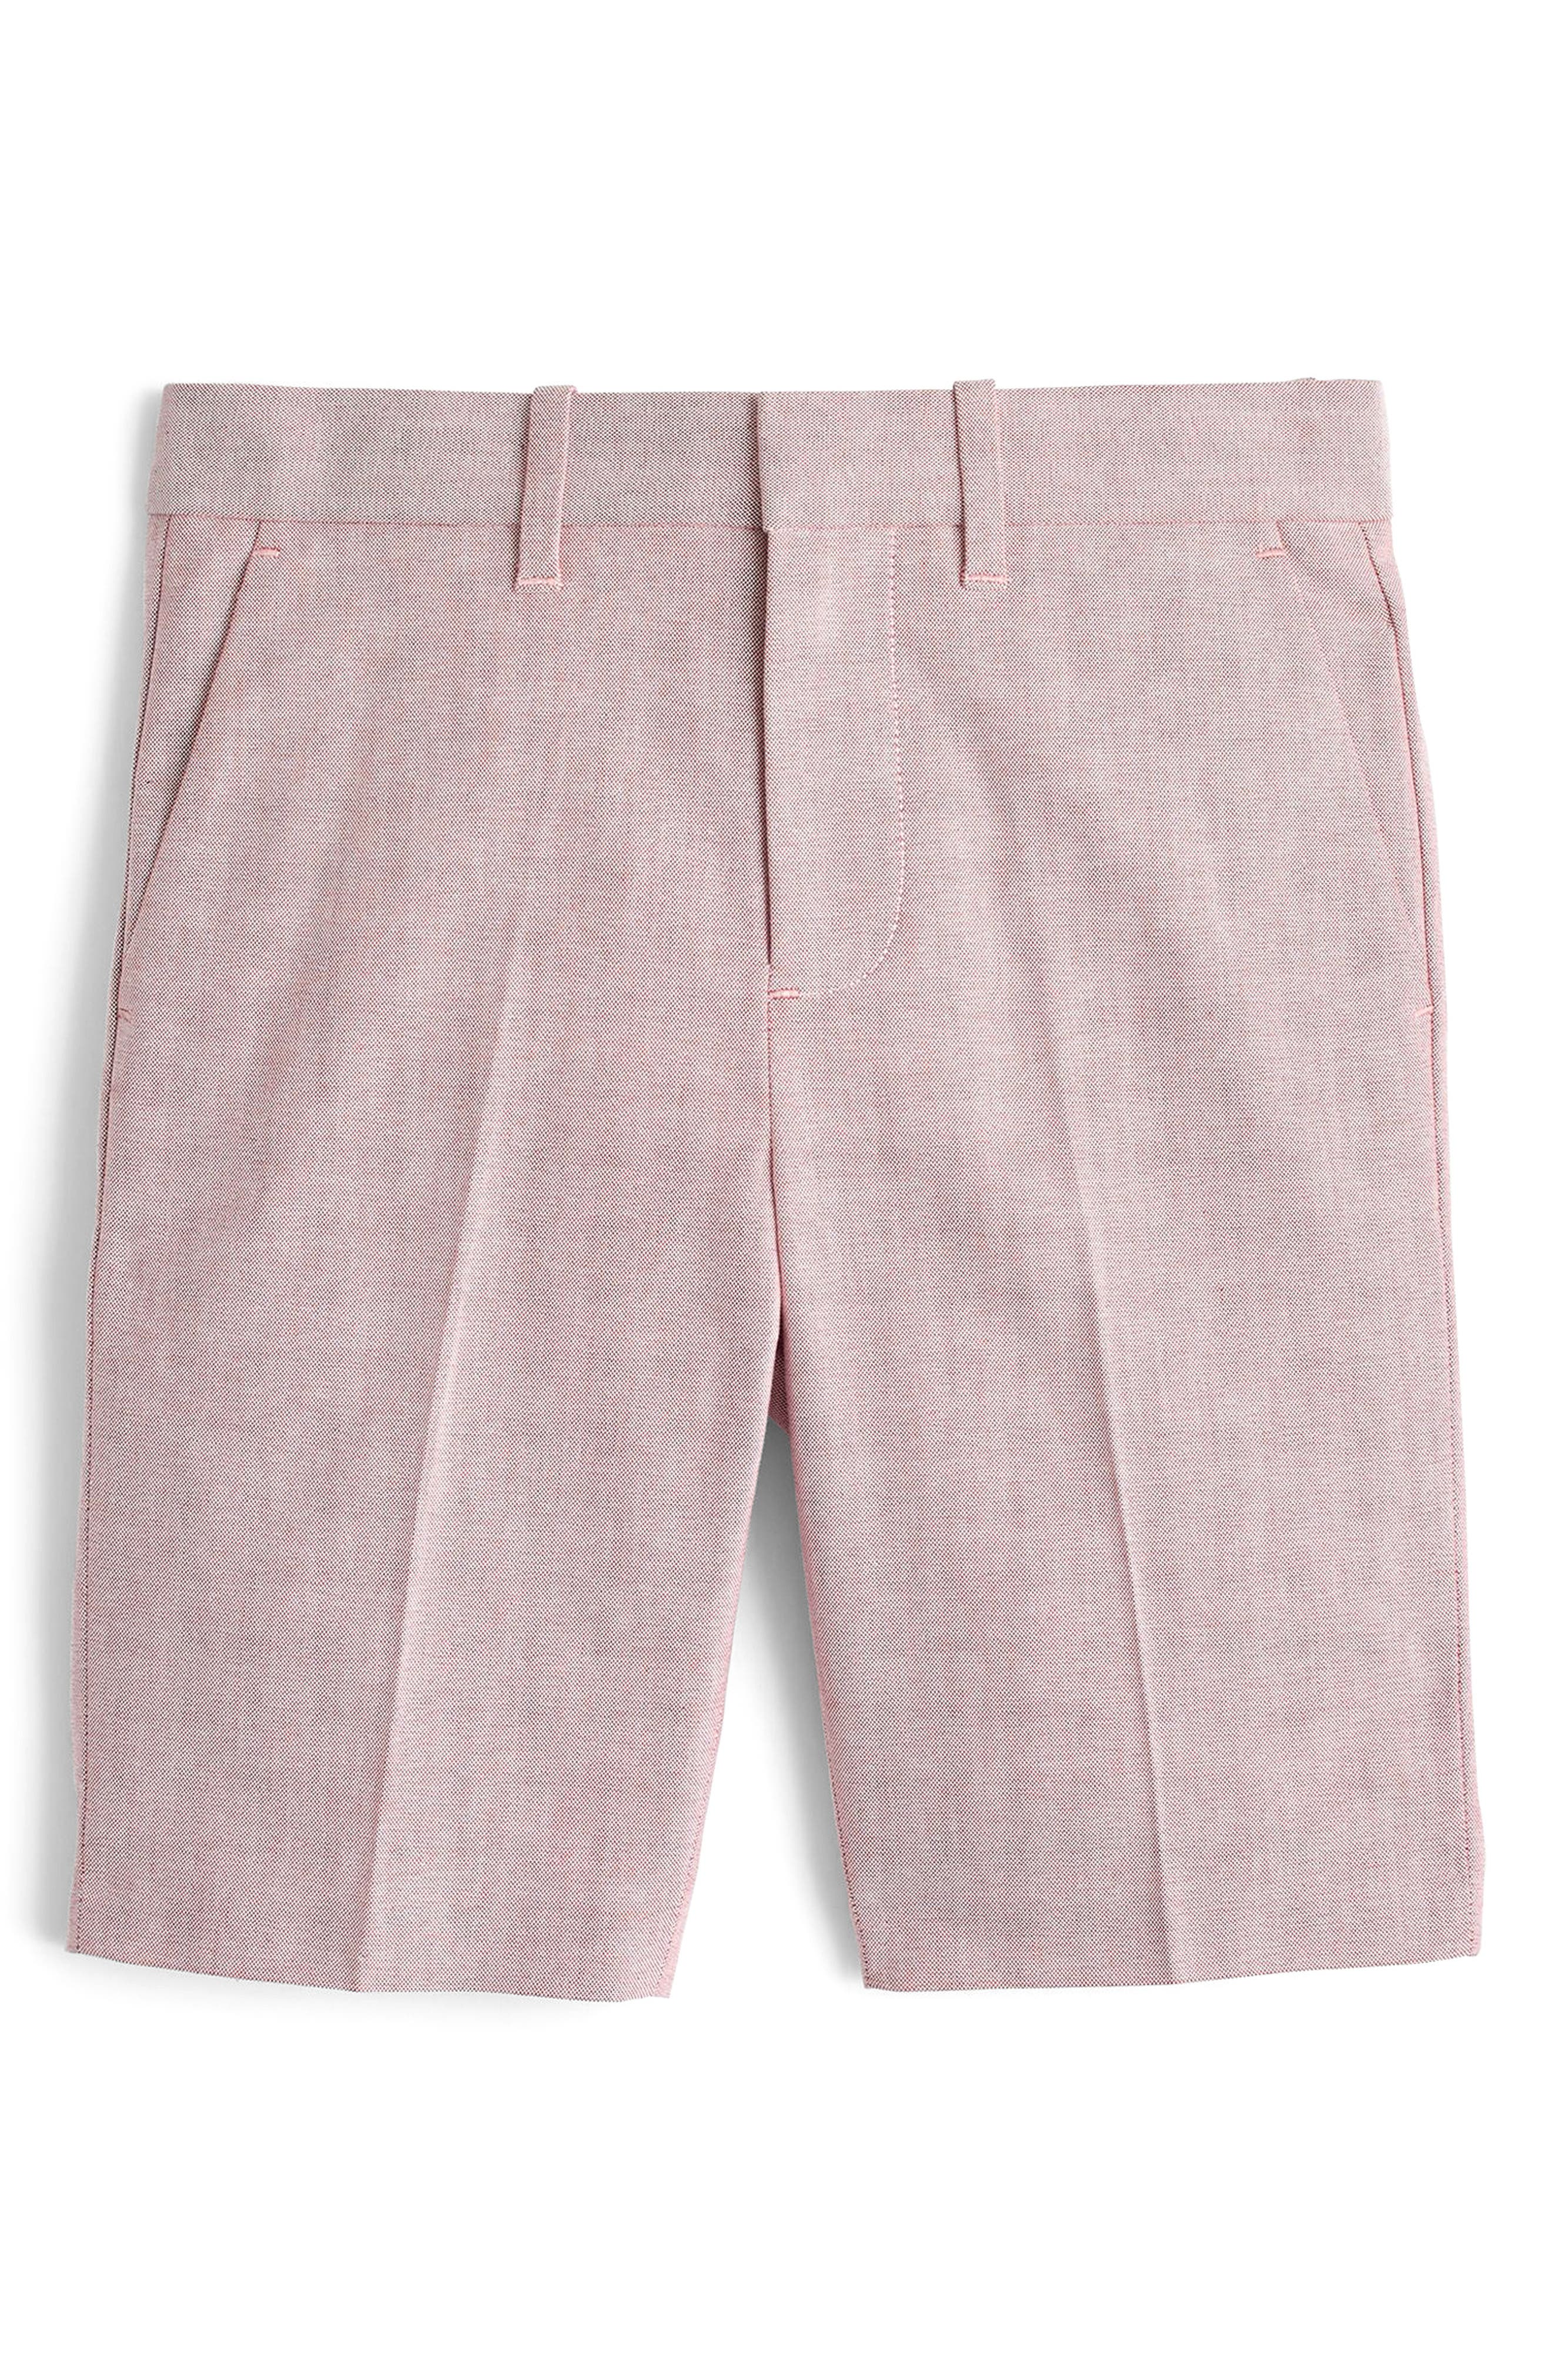 Ludlow Stretch Oxford Suit Shorts,                             Main thumbnail 1, color,                             Light Red